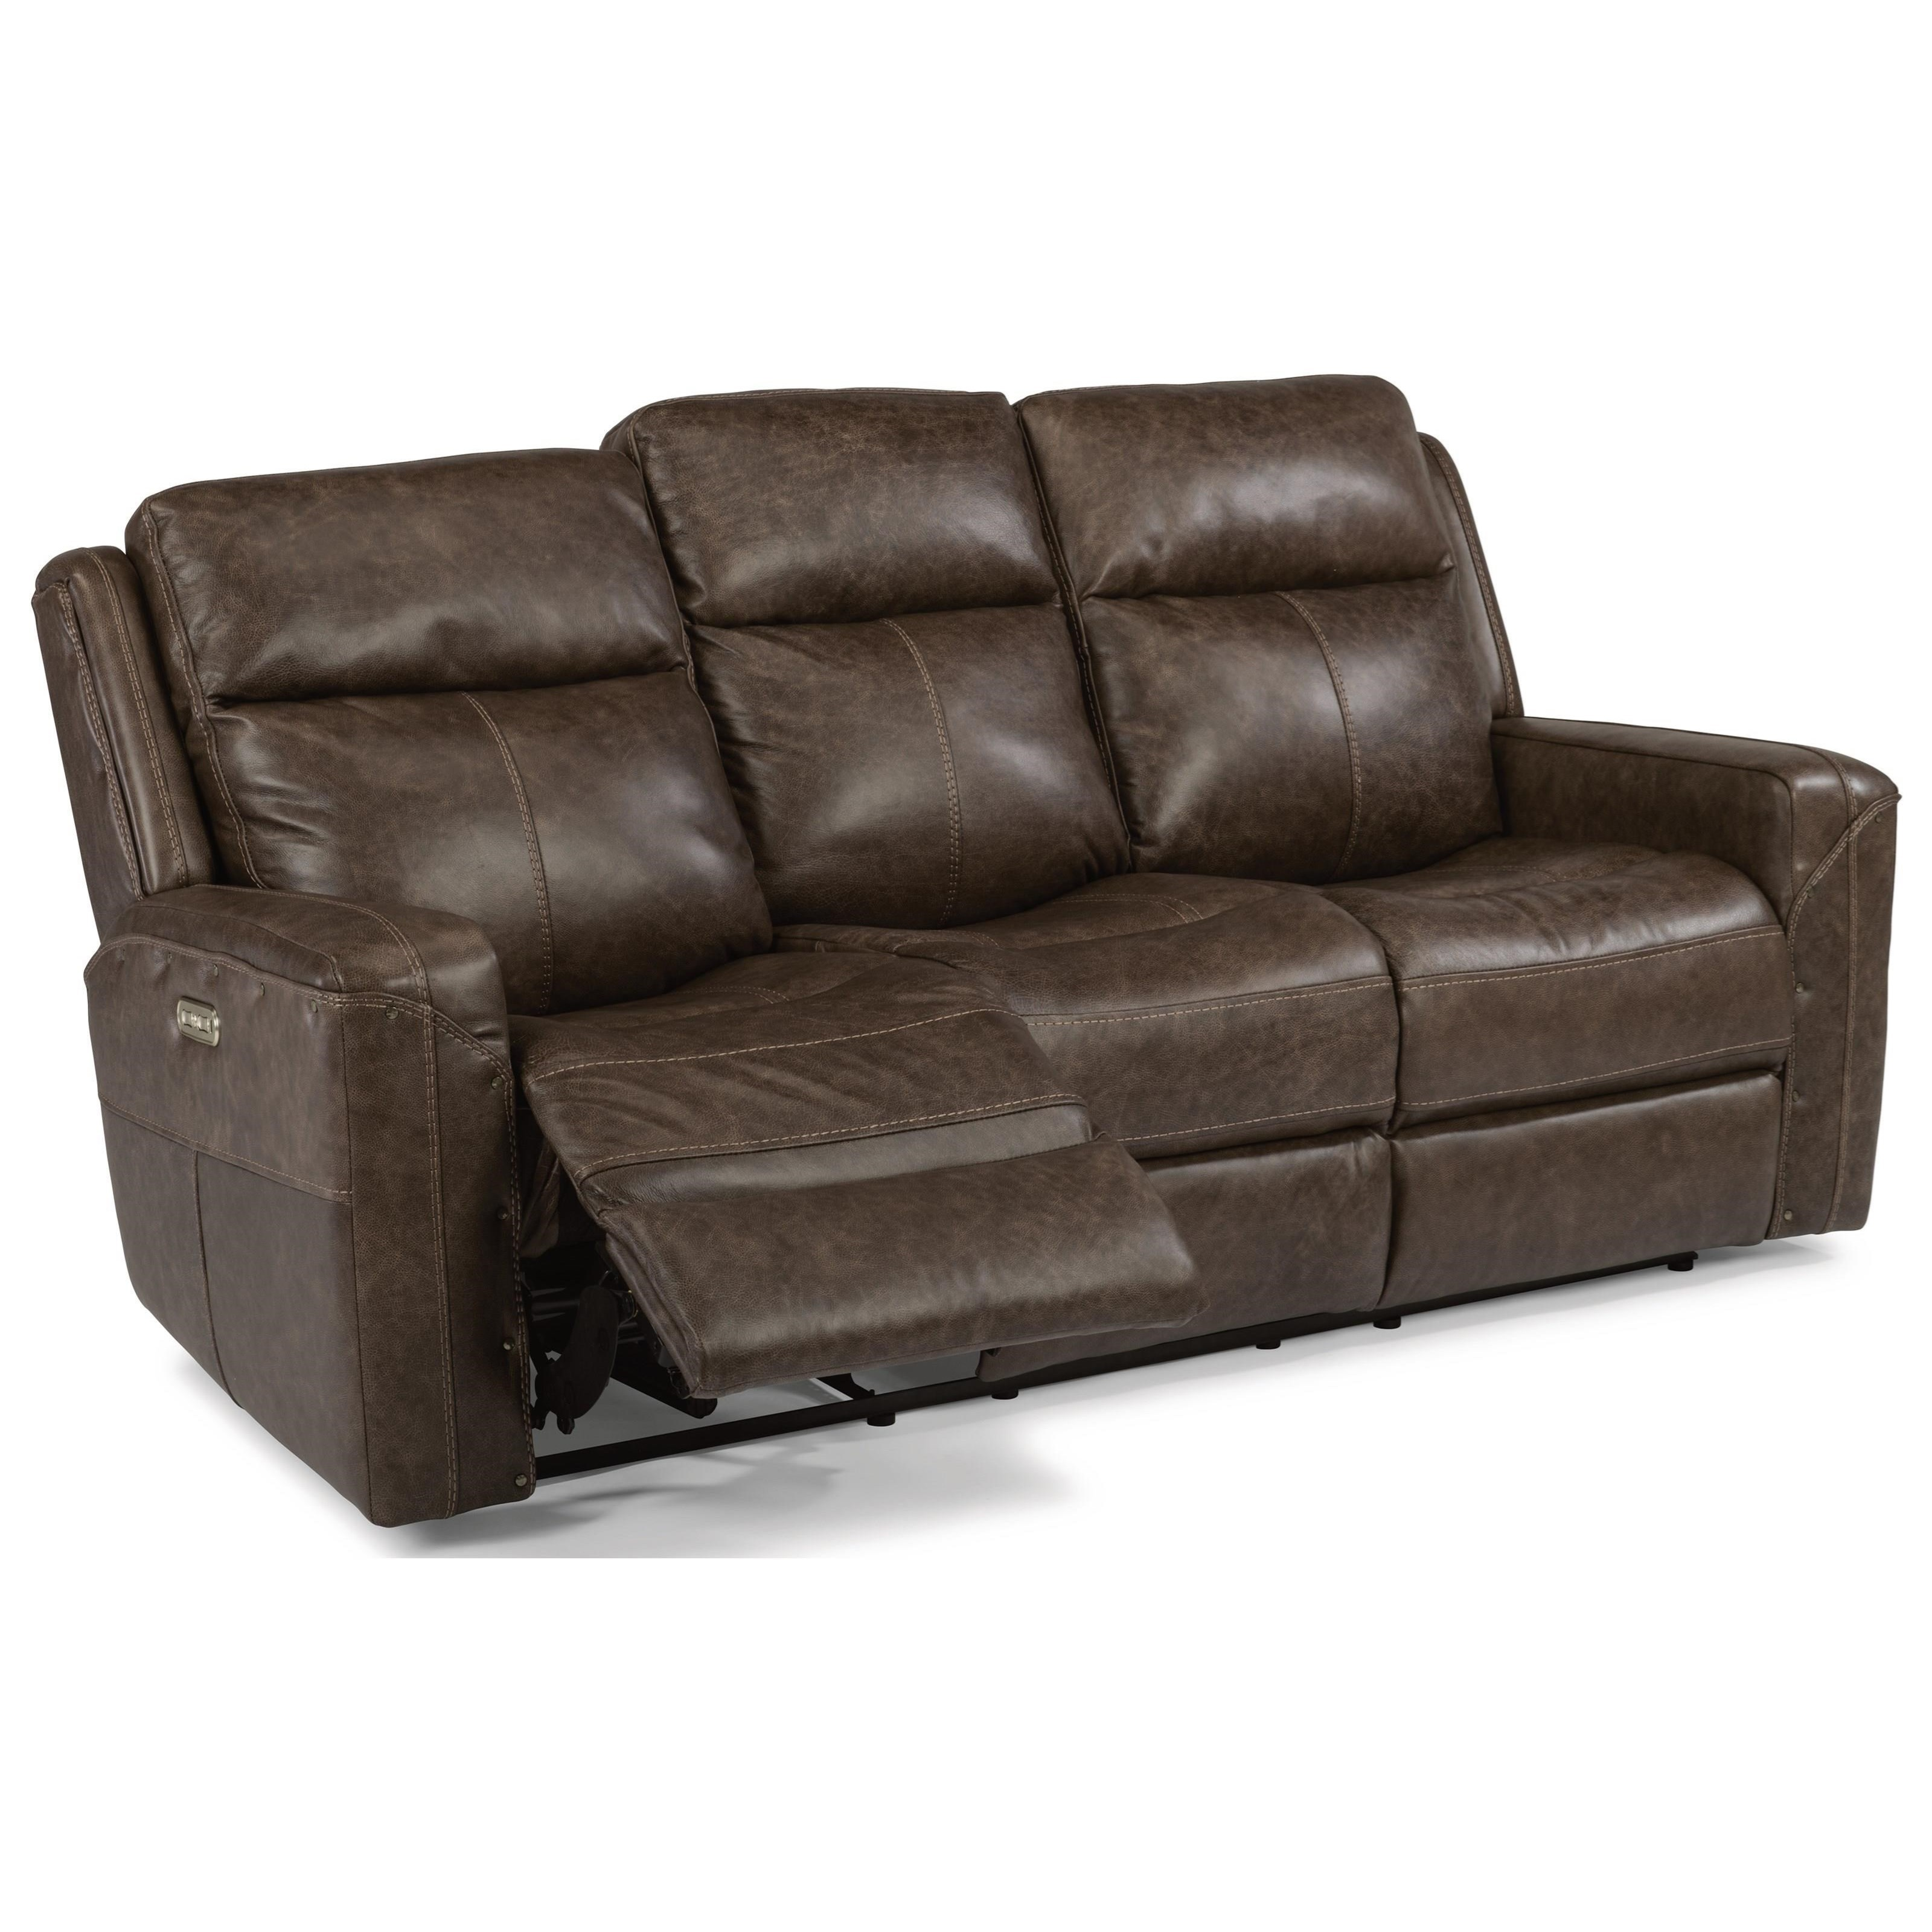 flexsteel leather sofa price dallas cowboys latitudes gunner power reclining with